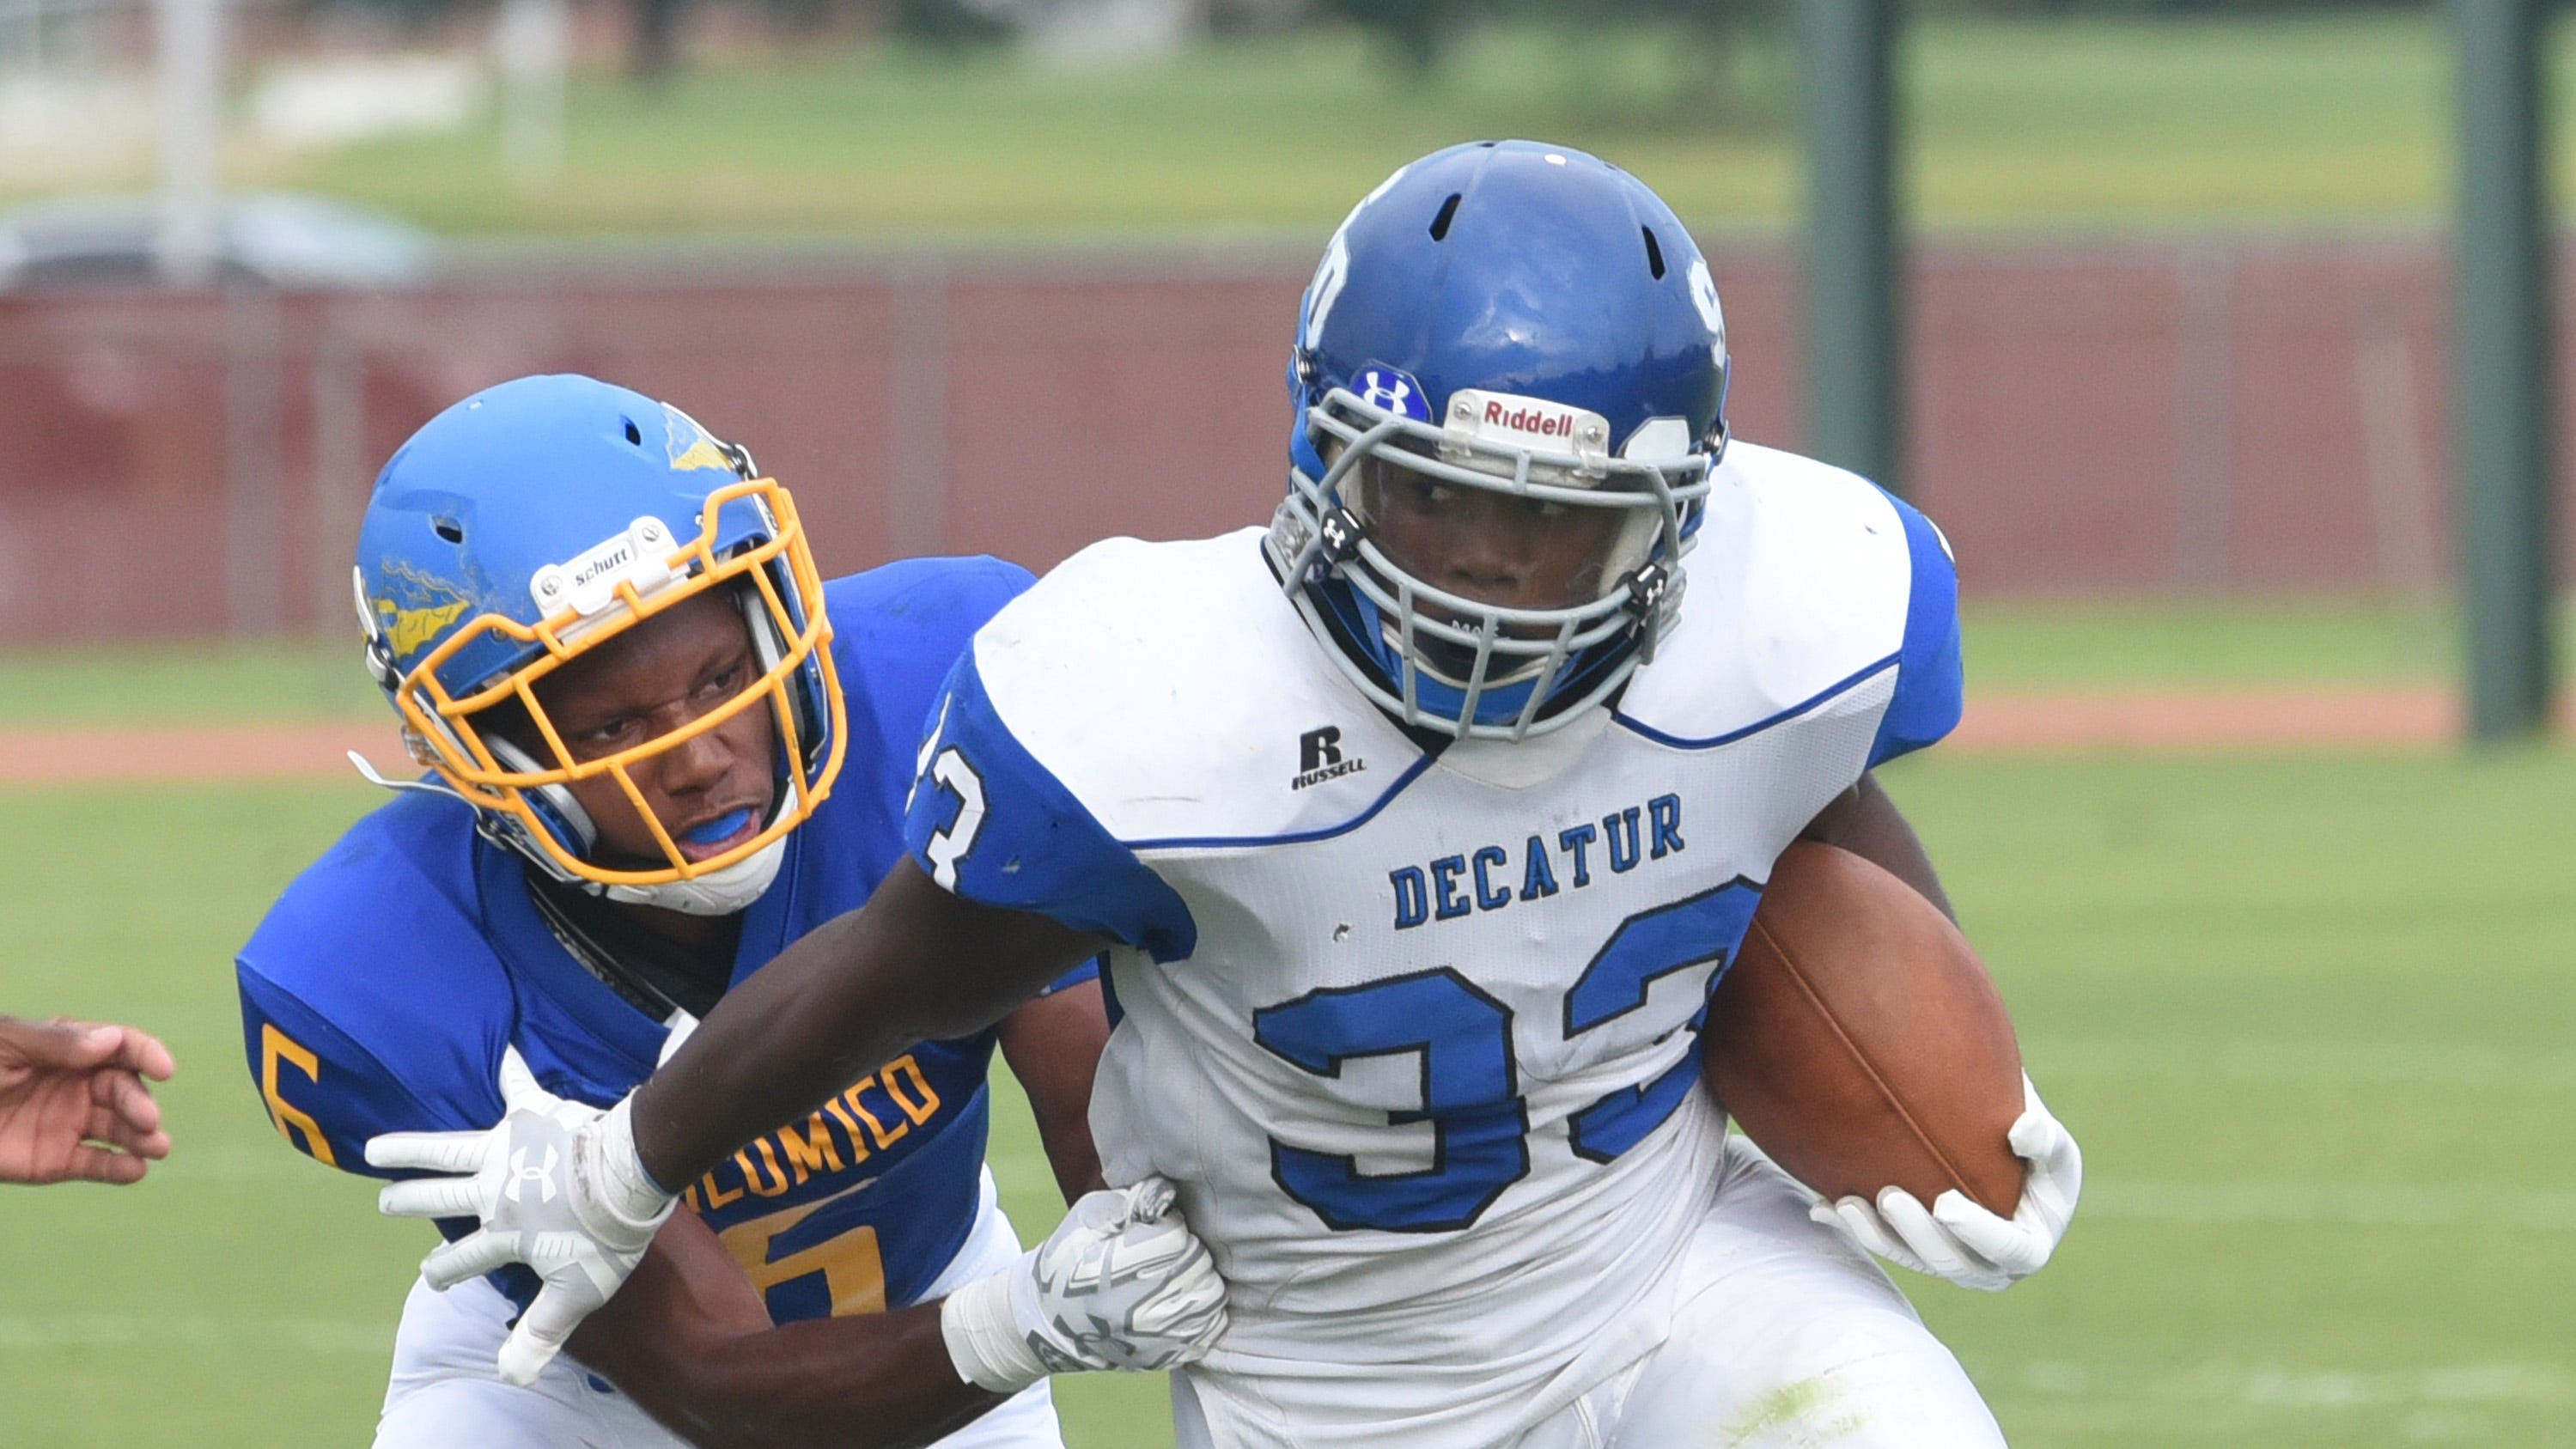 Decatur running back duo of London Drummond and Devin Waters bursts onto the scene